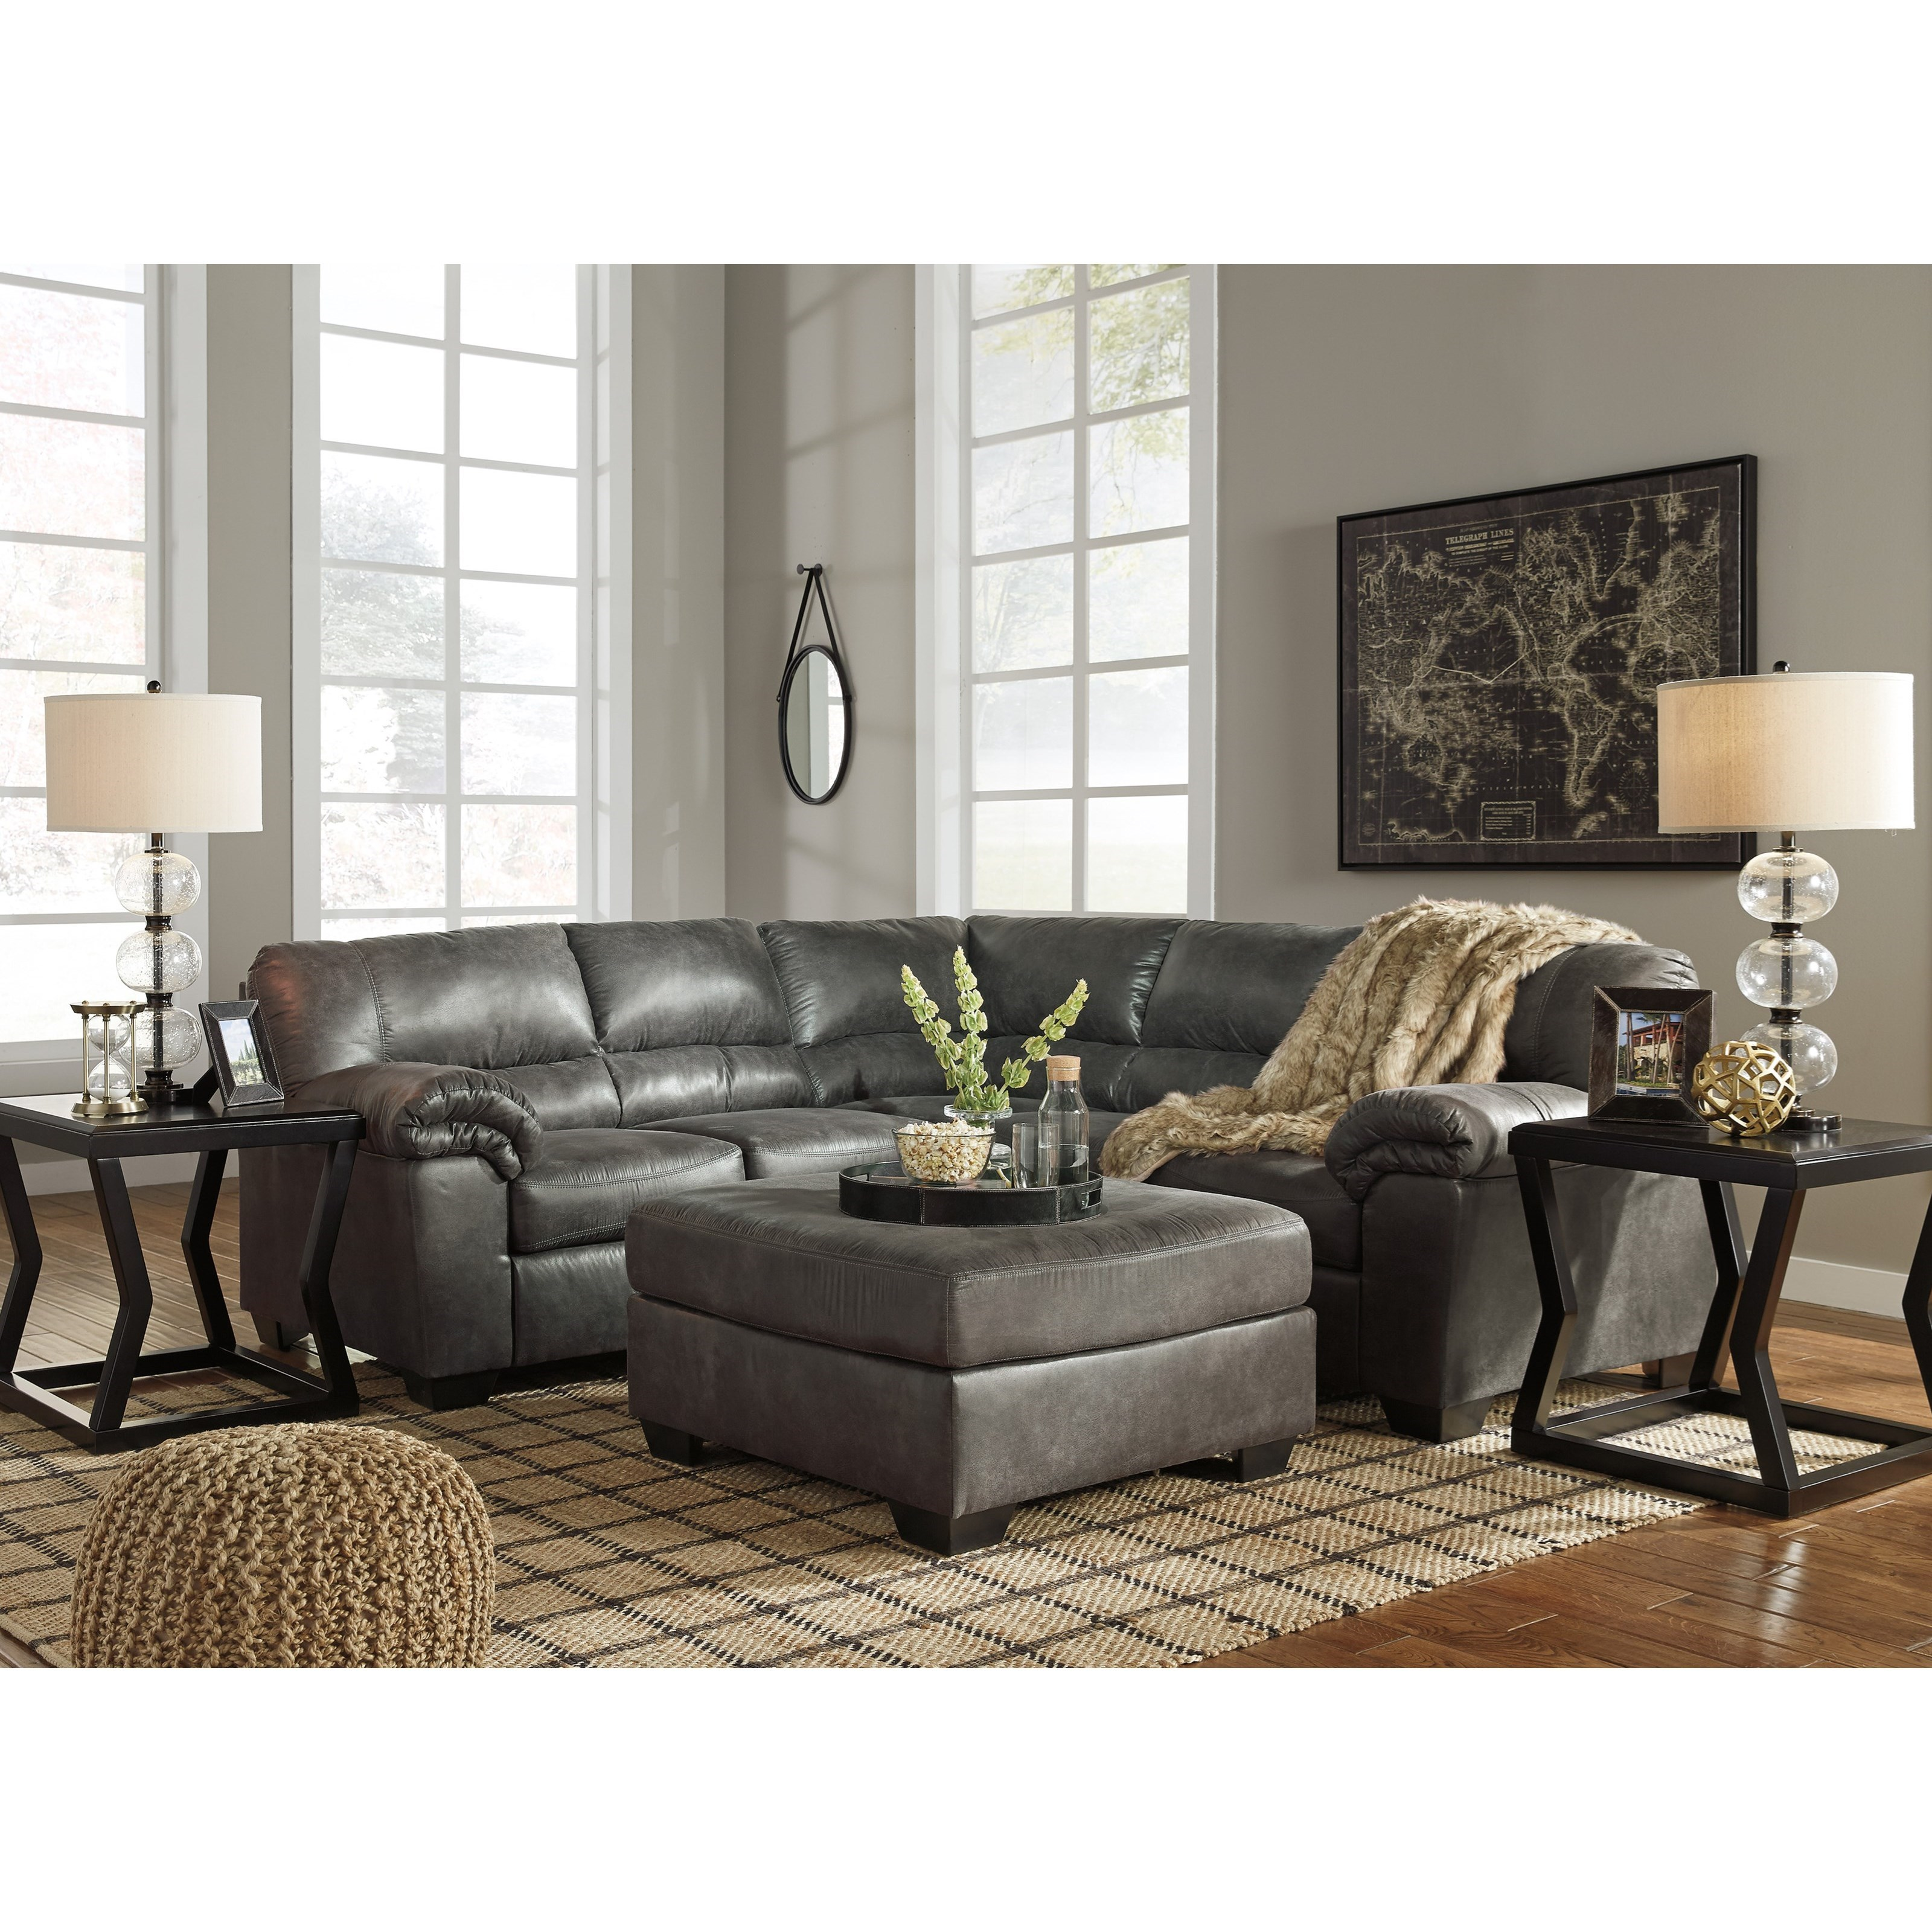 Bladen Stationary Living Room Group by Signature Design by Ashley at Standard Furniture